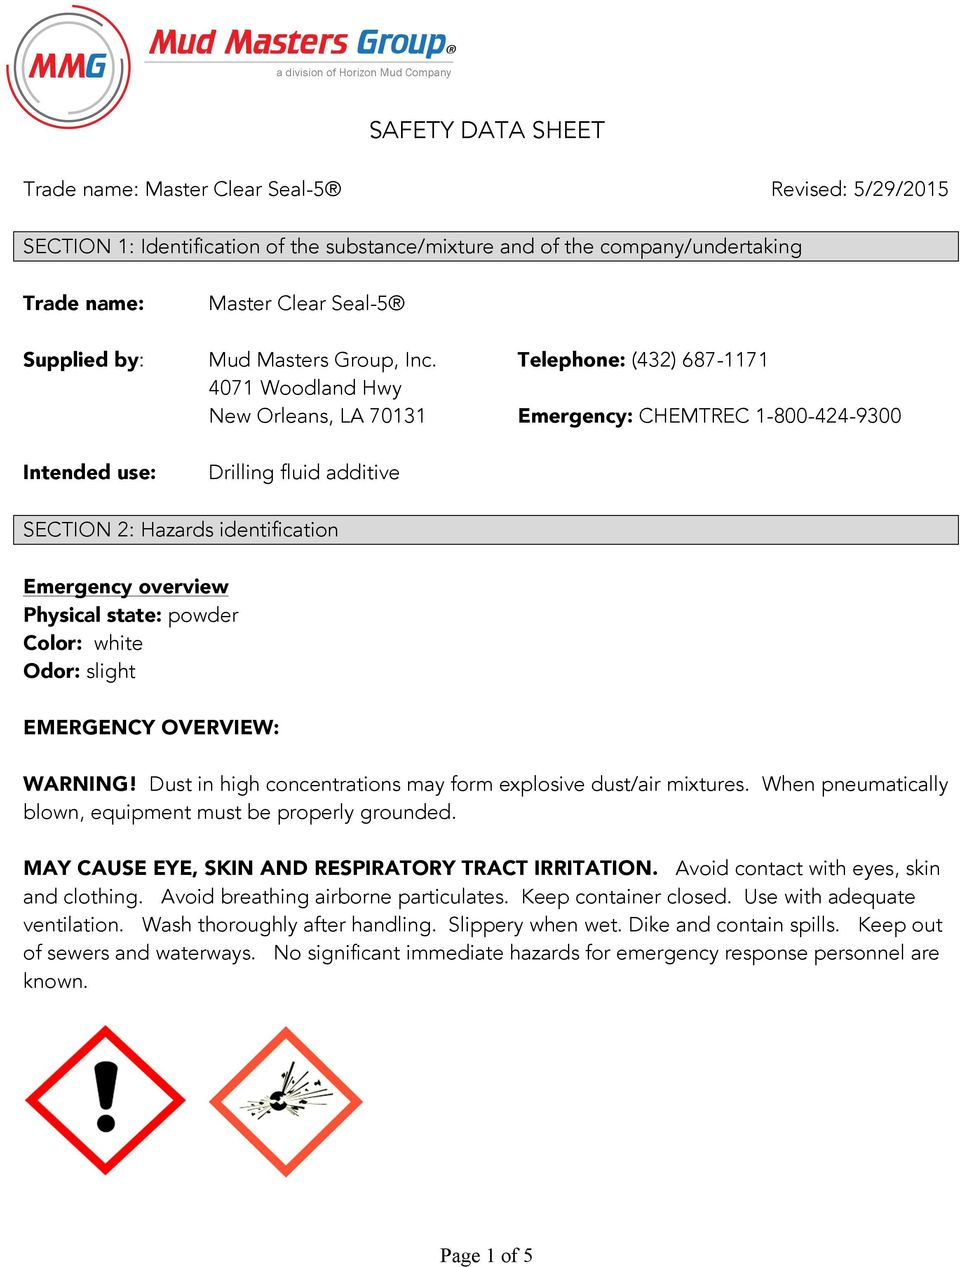 Telephone: (432) 687-1171 4071 Woodland Hwy New Orleans, LA 70131 Emergency: CHEMTREC 1-800-424-9300 Intended use: Drilling fluid additive SECTION 2: Hazards identification Emergency overview